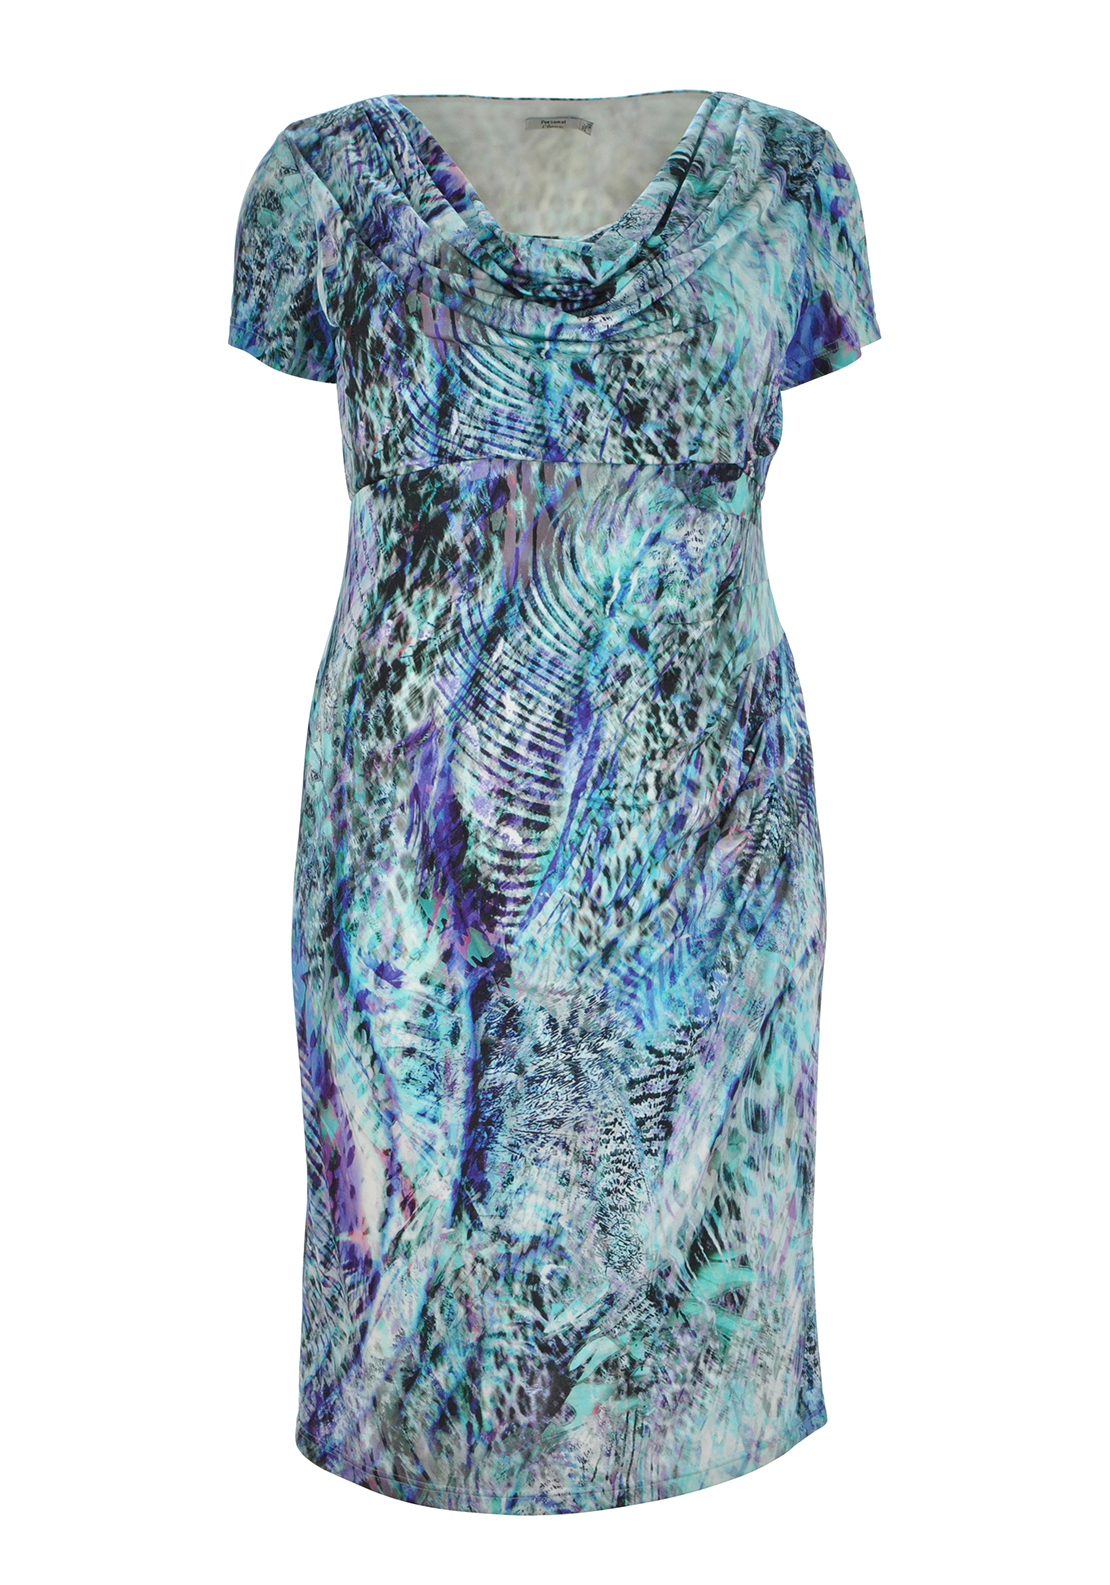 Personal Choice Digital Print Dress, Multi Coloured